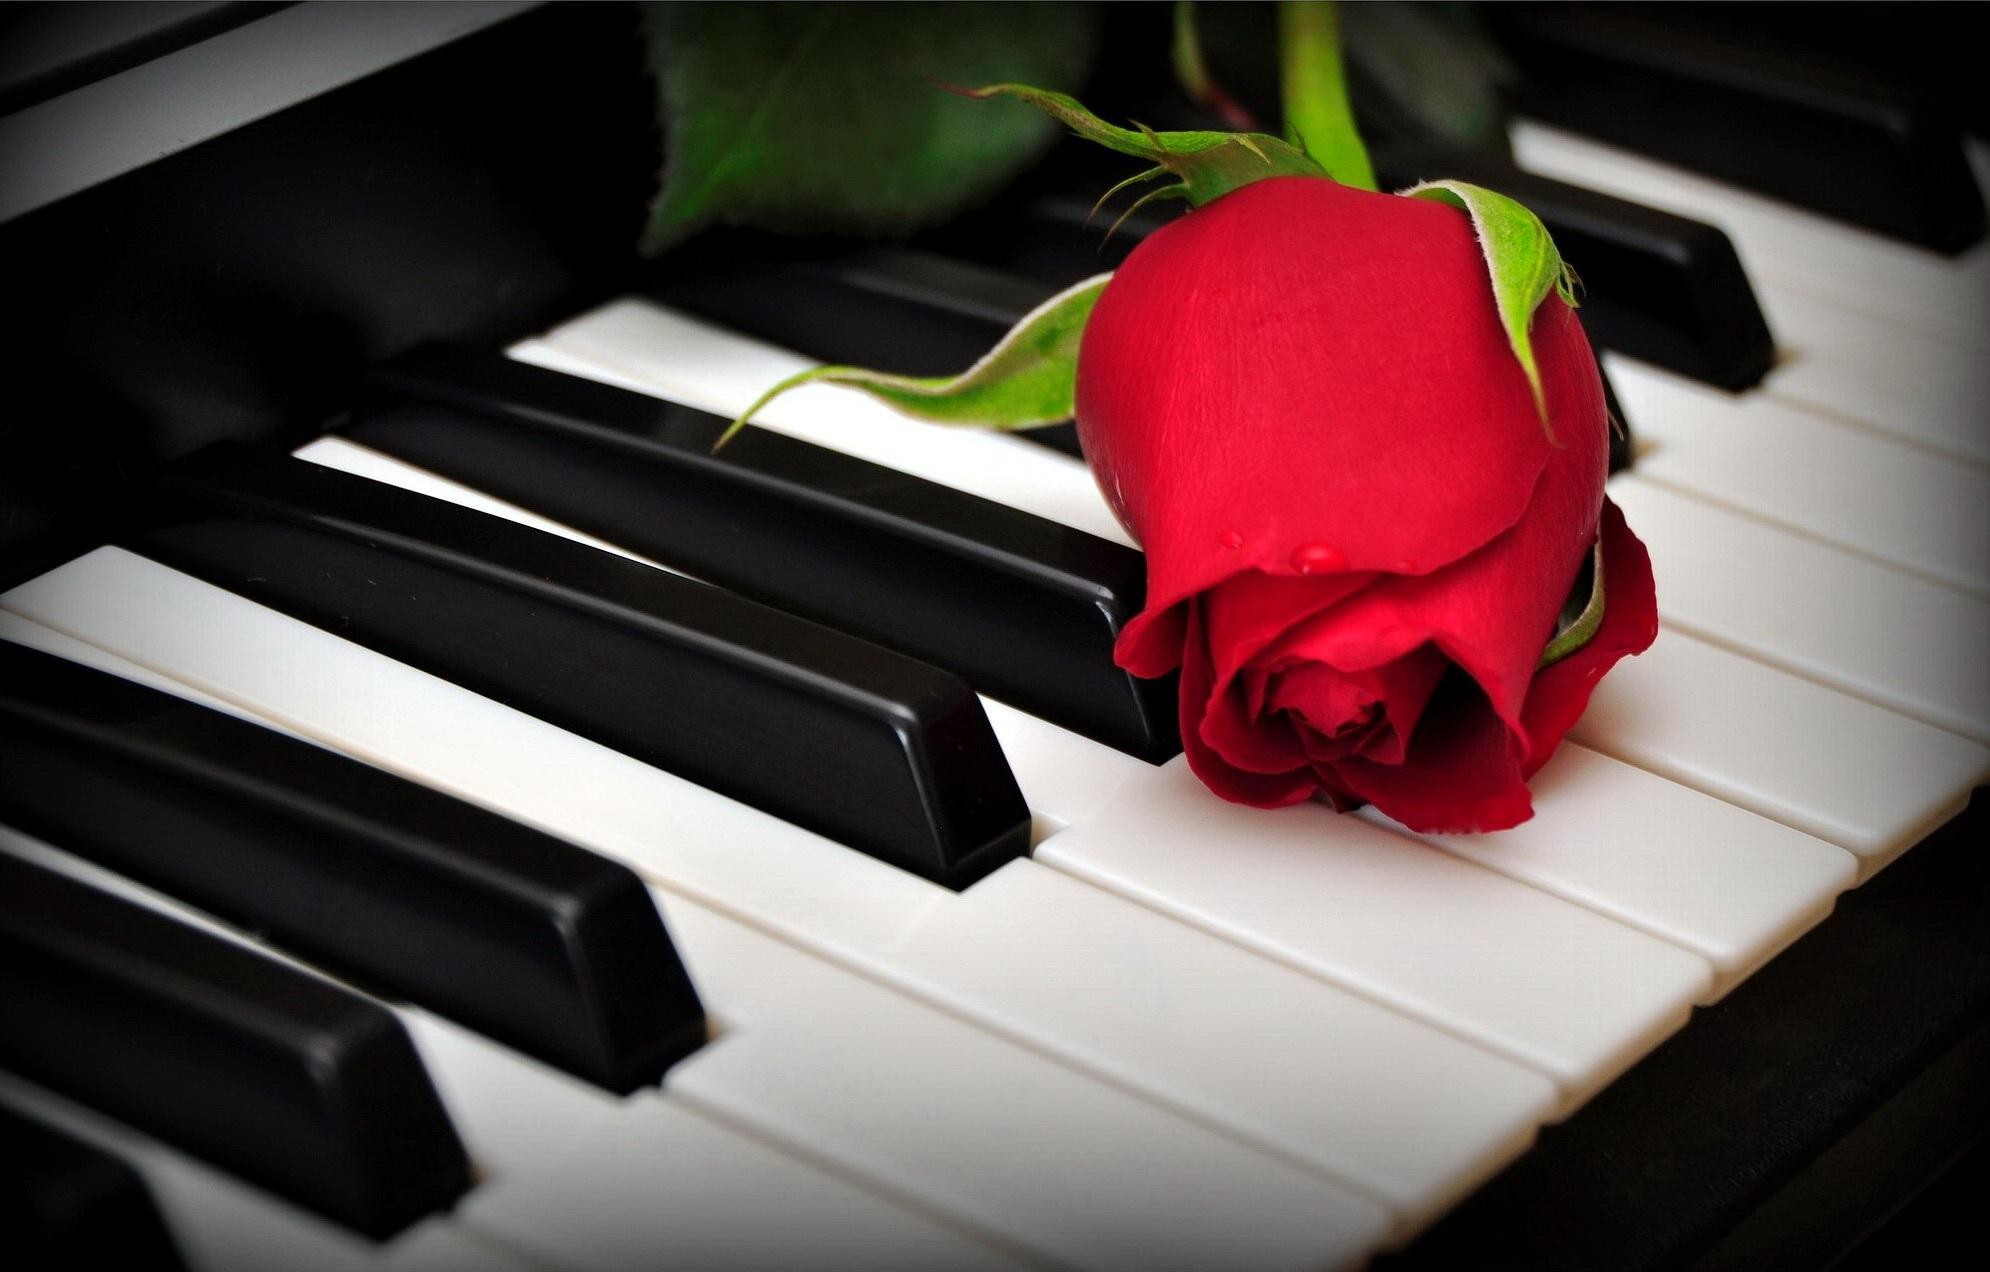 romantic-piano-86547